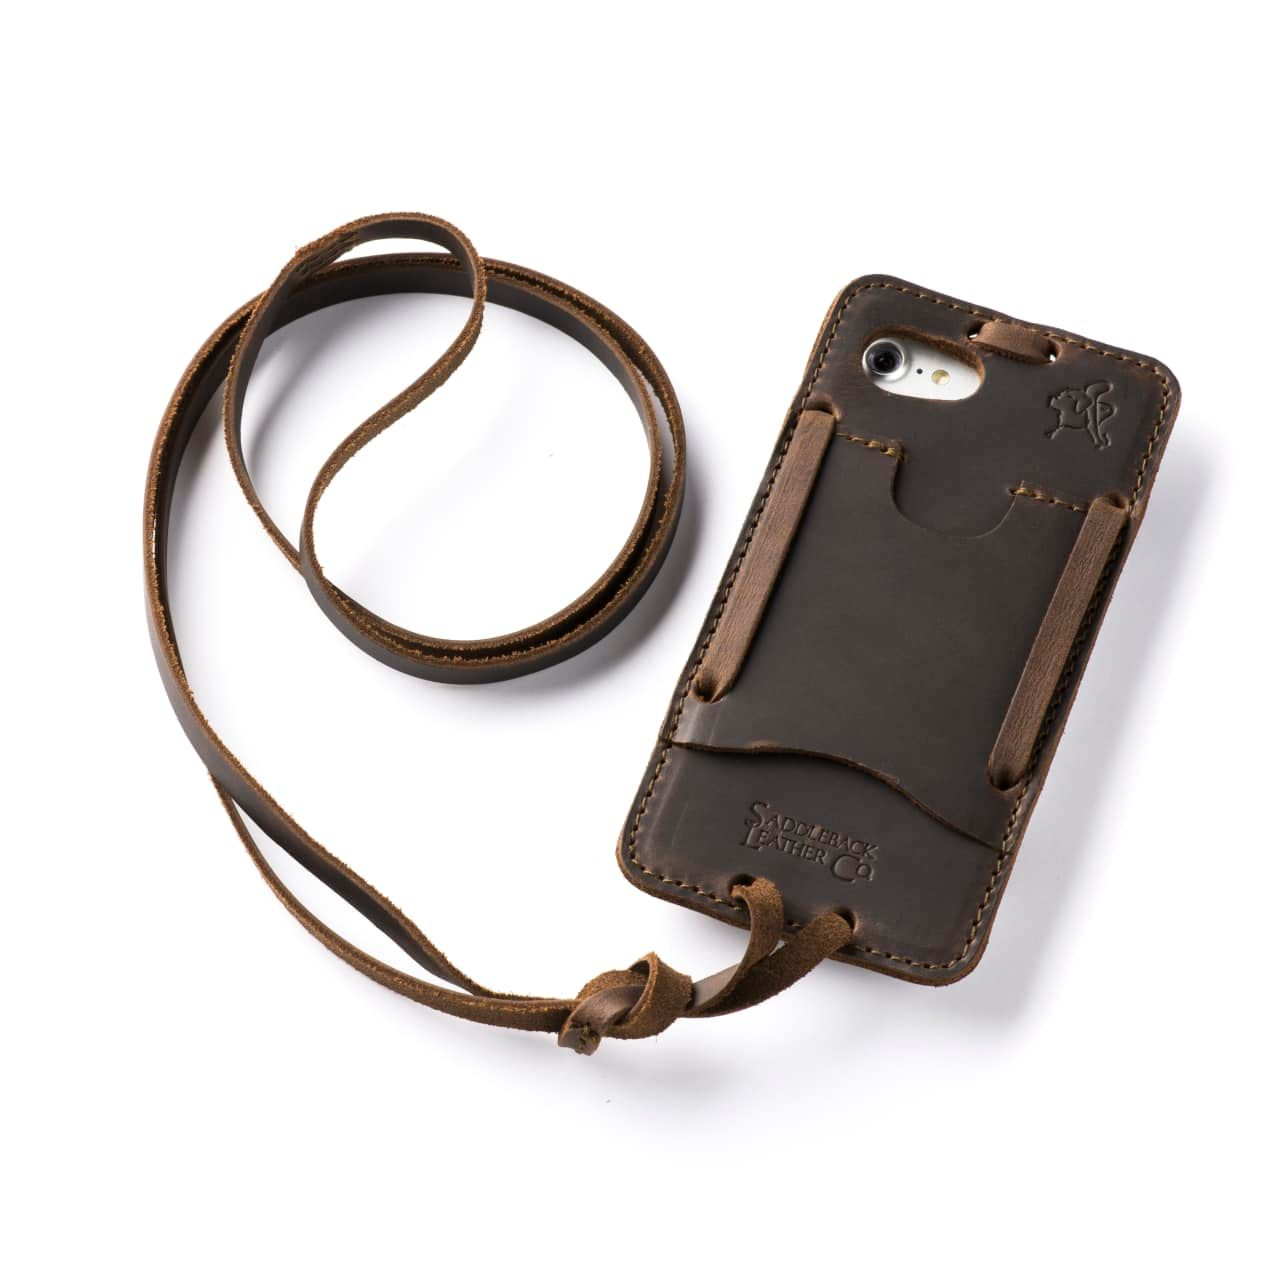 Leather iPhone 8 Case in Color Dark Coffee Brown with the Lanyard attached back angle showing empty card slot